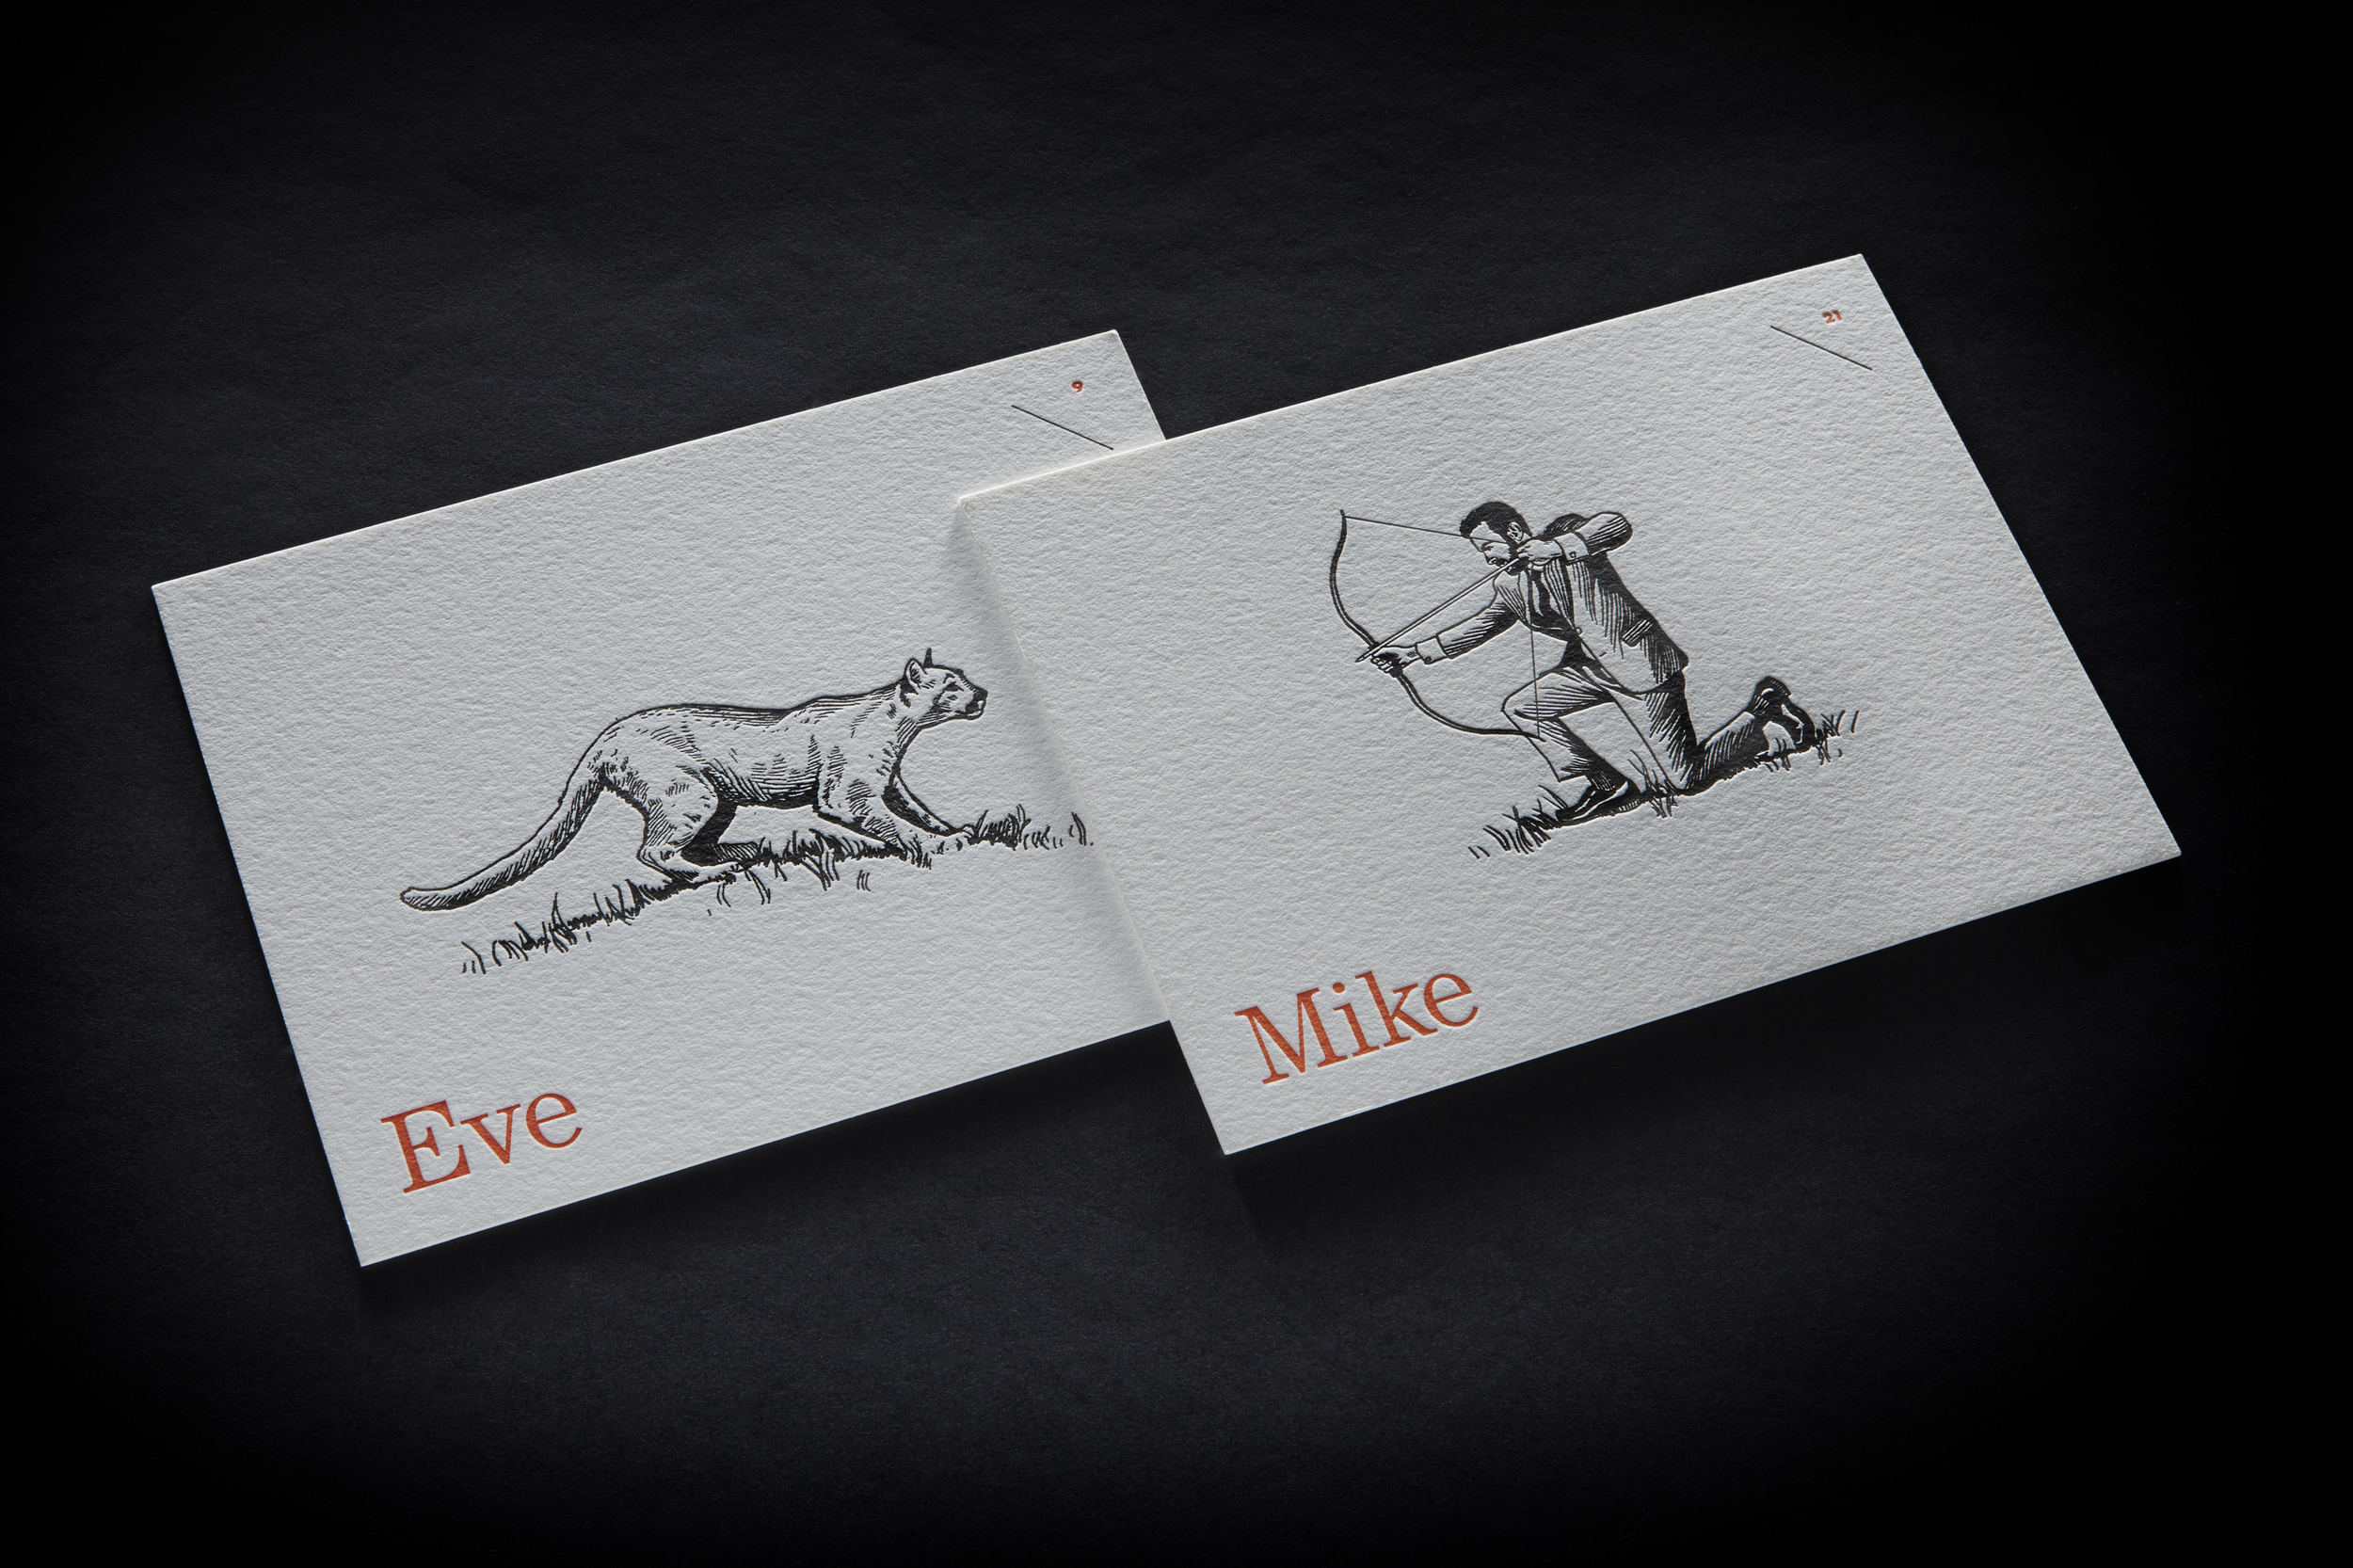 EVE & MIKE